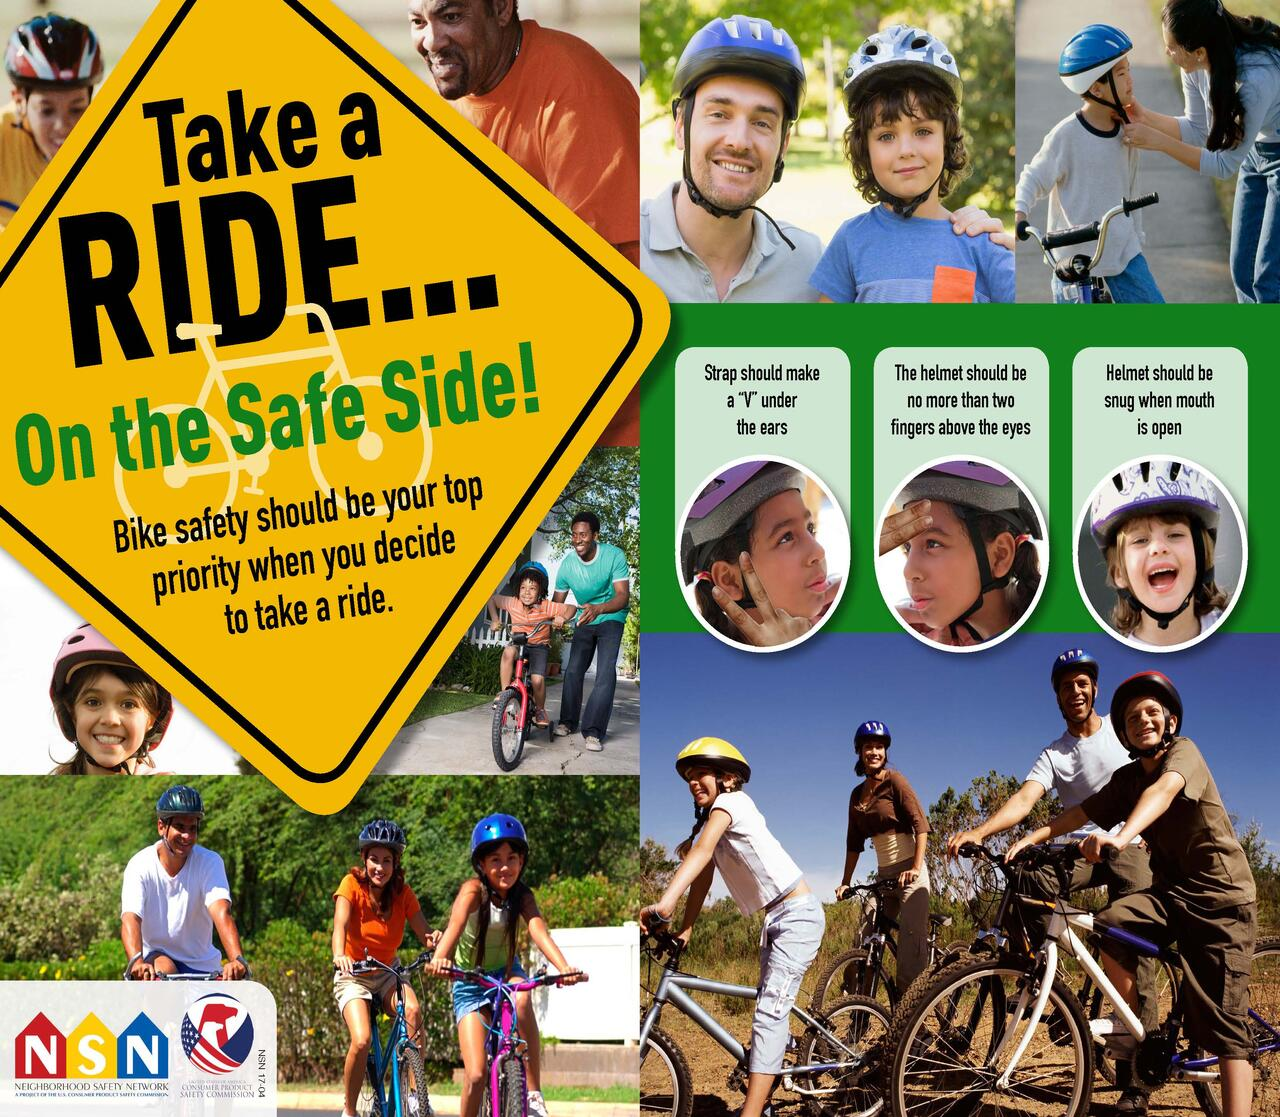 Summer Is The Season To Enjoy Car Trips And Bike Rides Union County Board Of Chosen Freeholders Offering A Series Free Programs Help